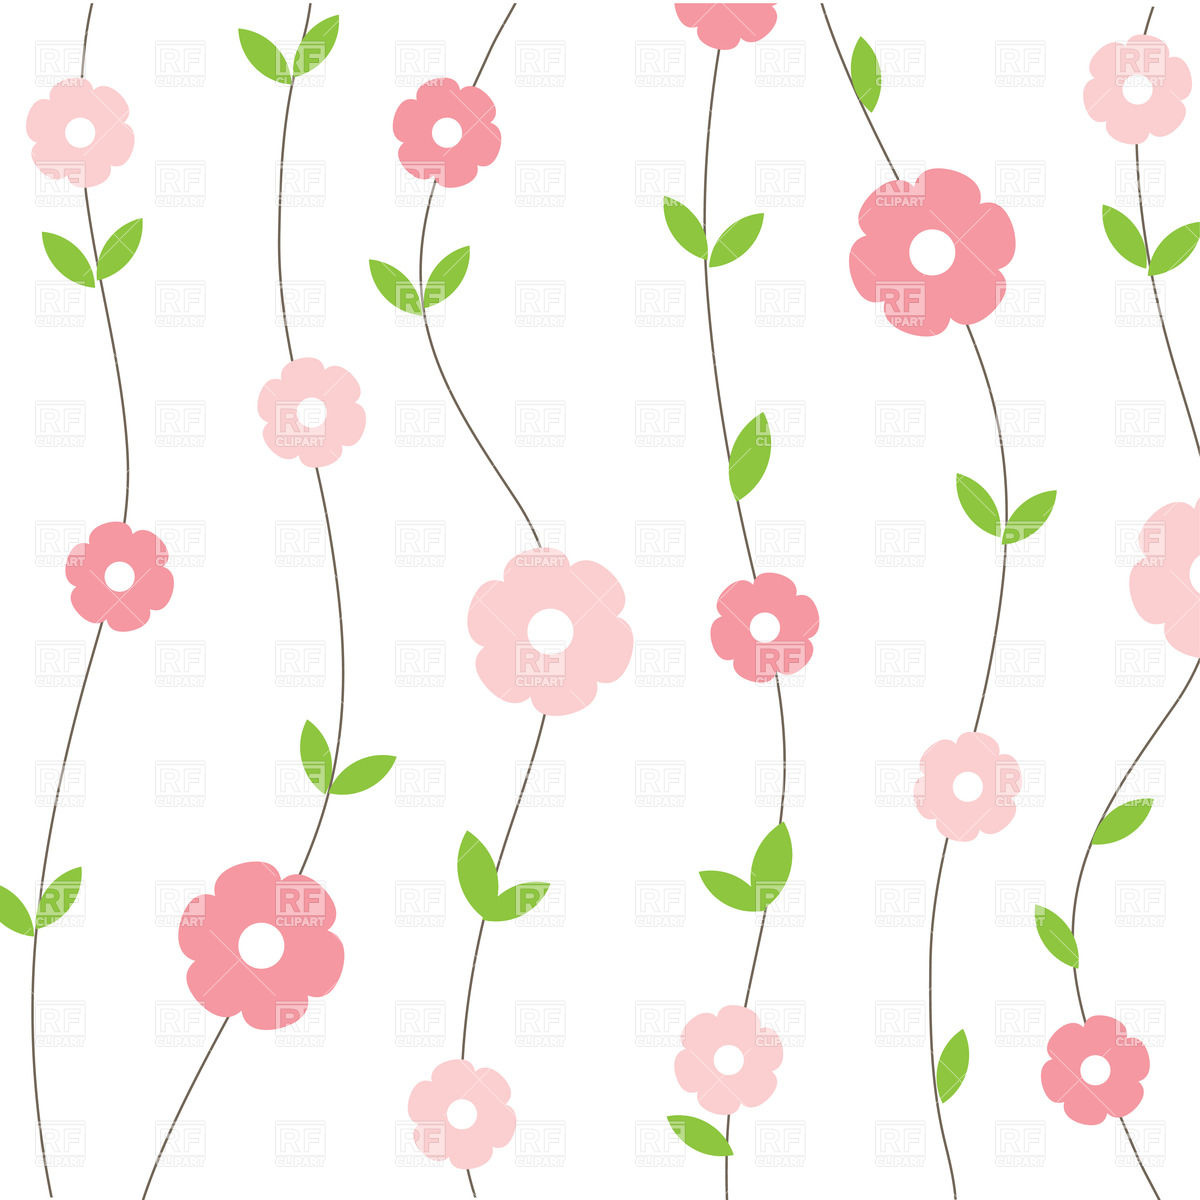 Simple Floral Background Png